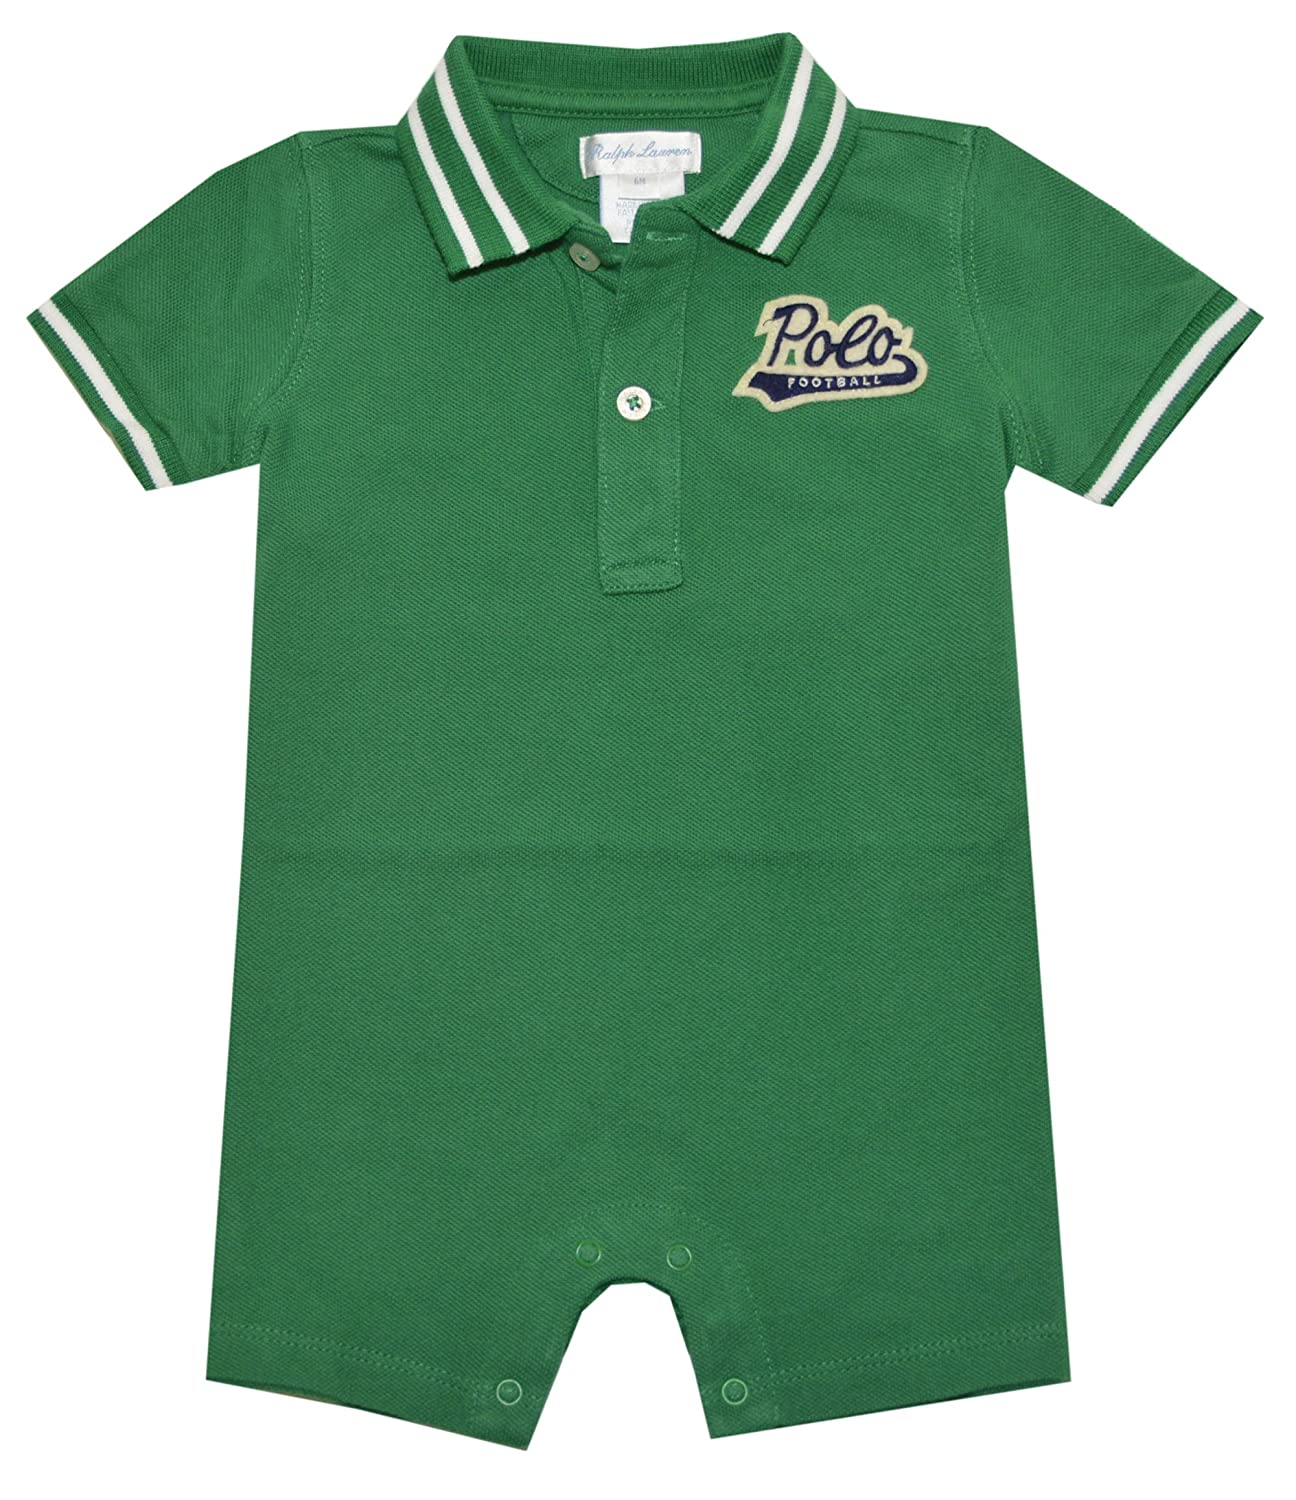 0a8314722 Amazon.com  RALPH LAUREN Baby Boys Varsity Shortall  Clothing